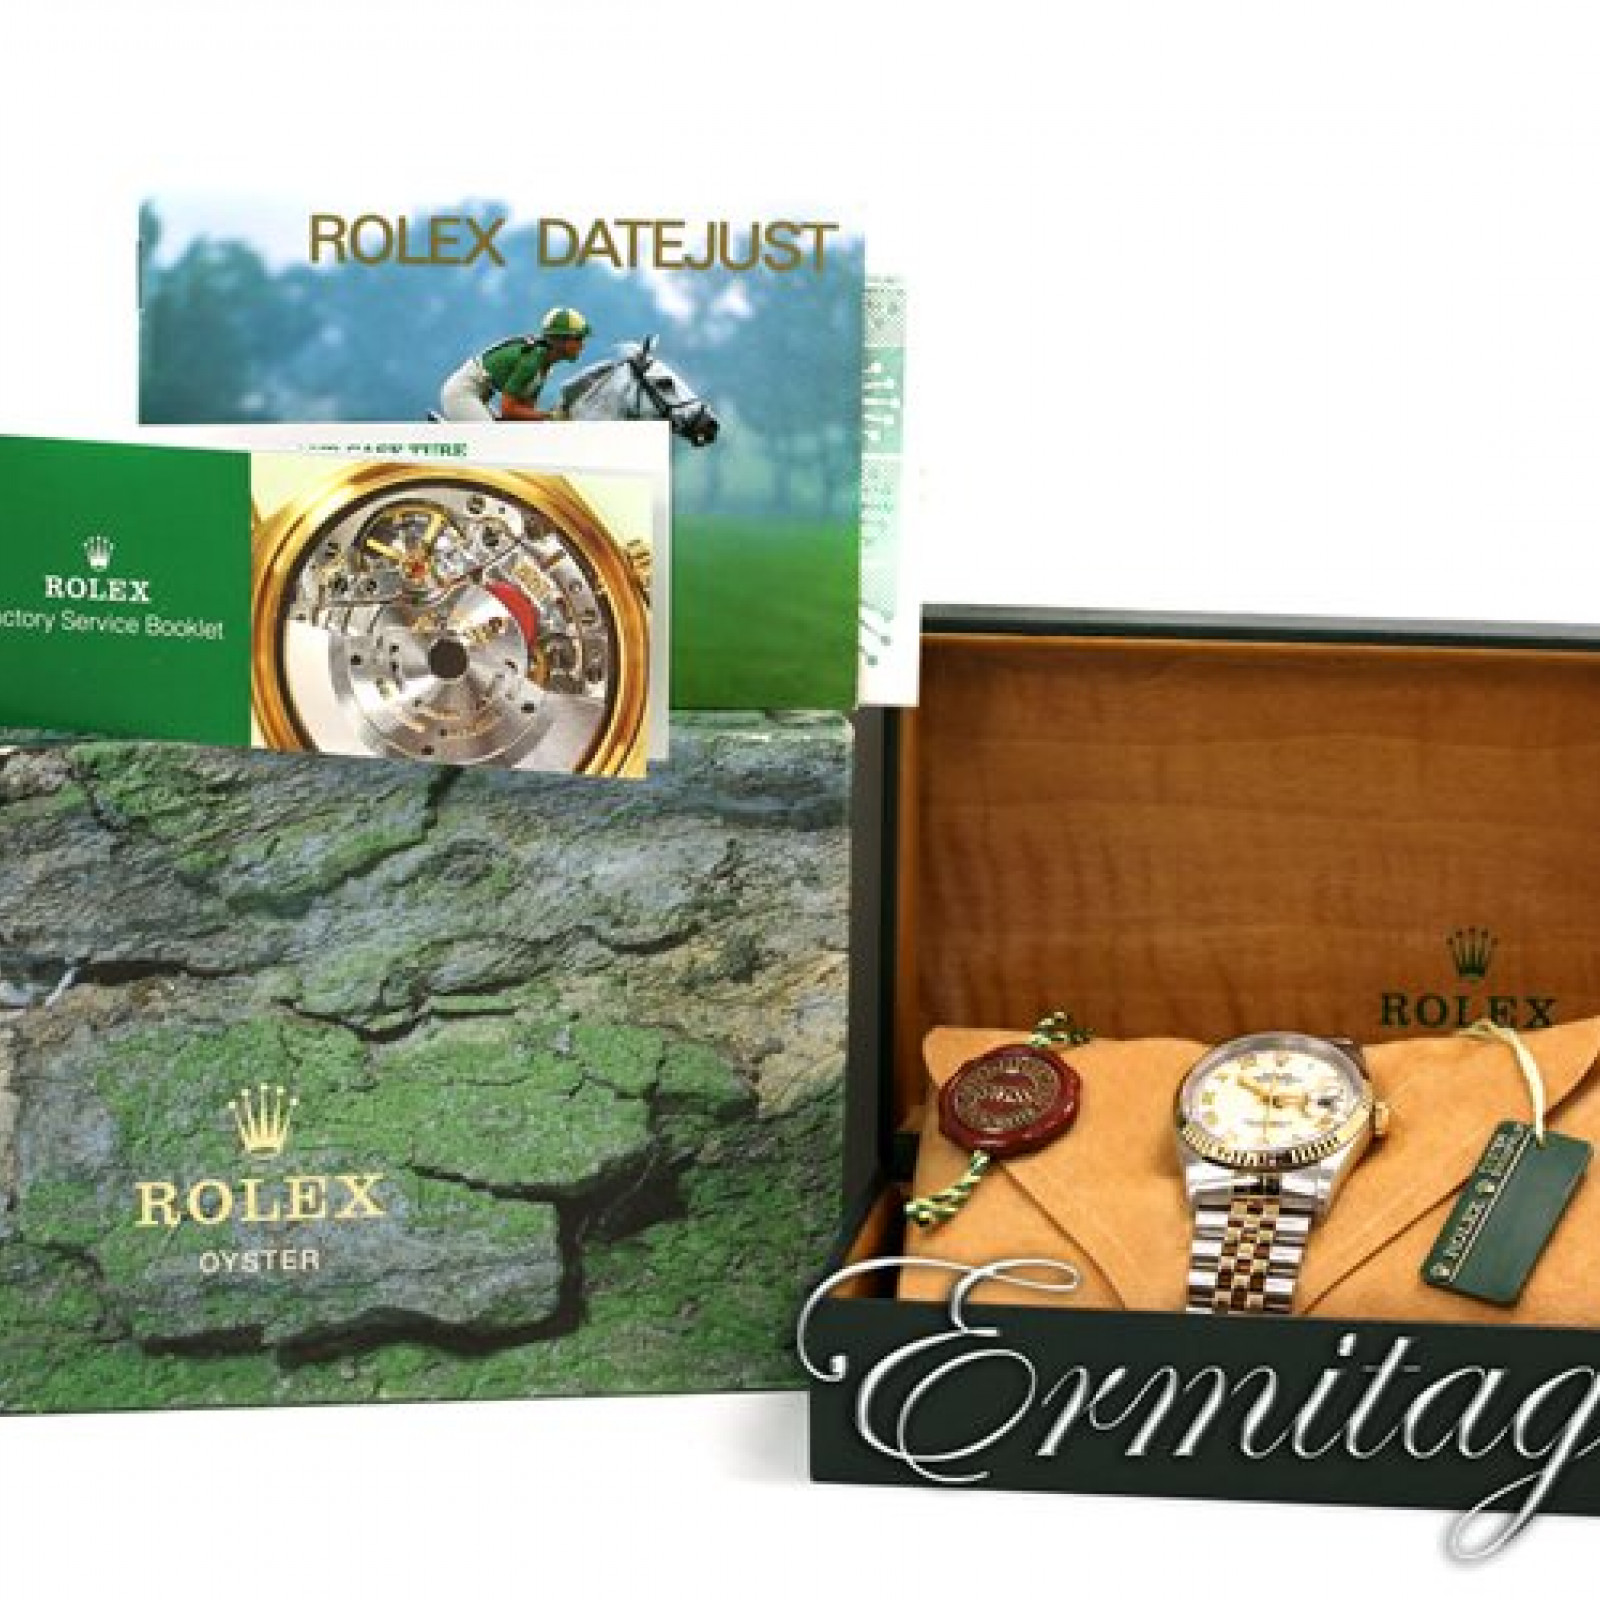 Rolex Datejust Ref 16233 Year 1998 with Pyramid Dial and Gold Roman Markers.